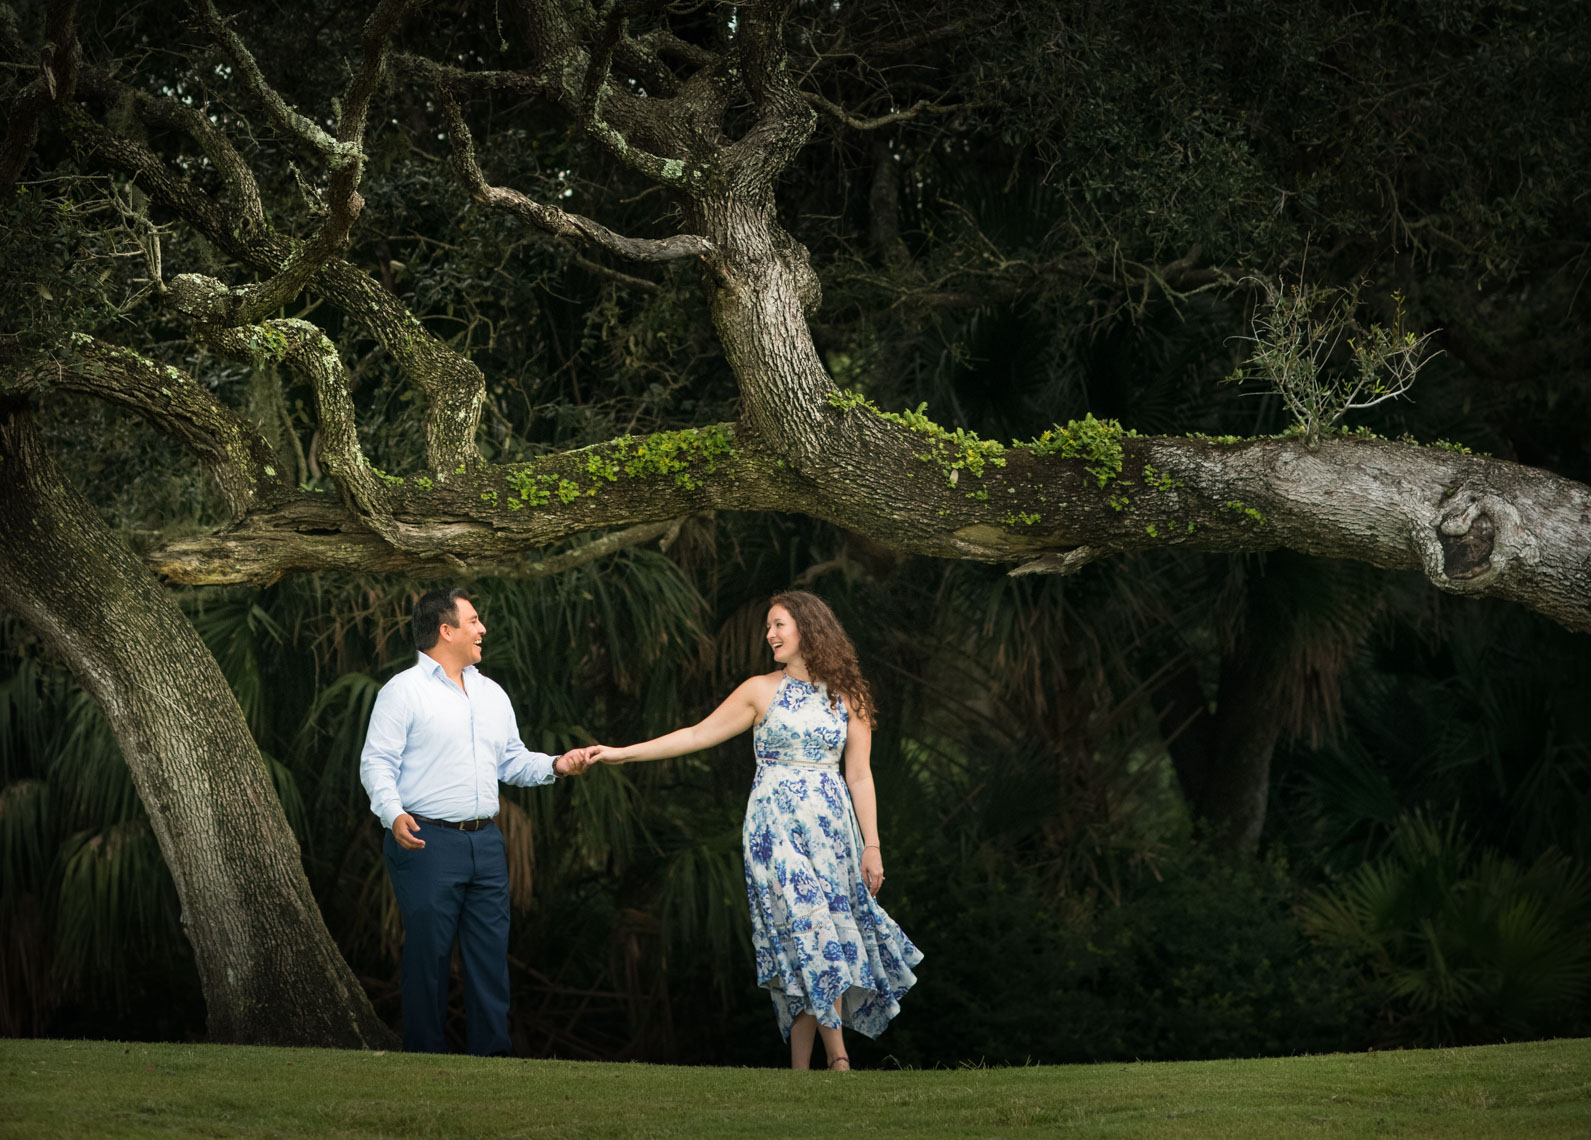 Family-Portrait-Photography-Amelia-Island-102